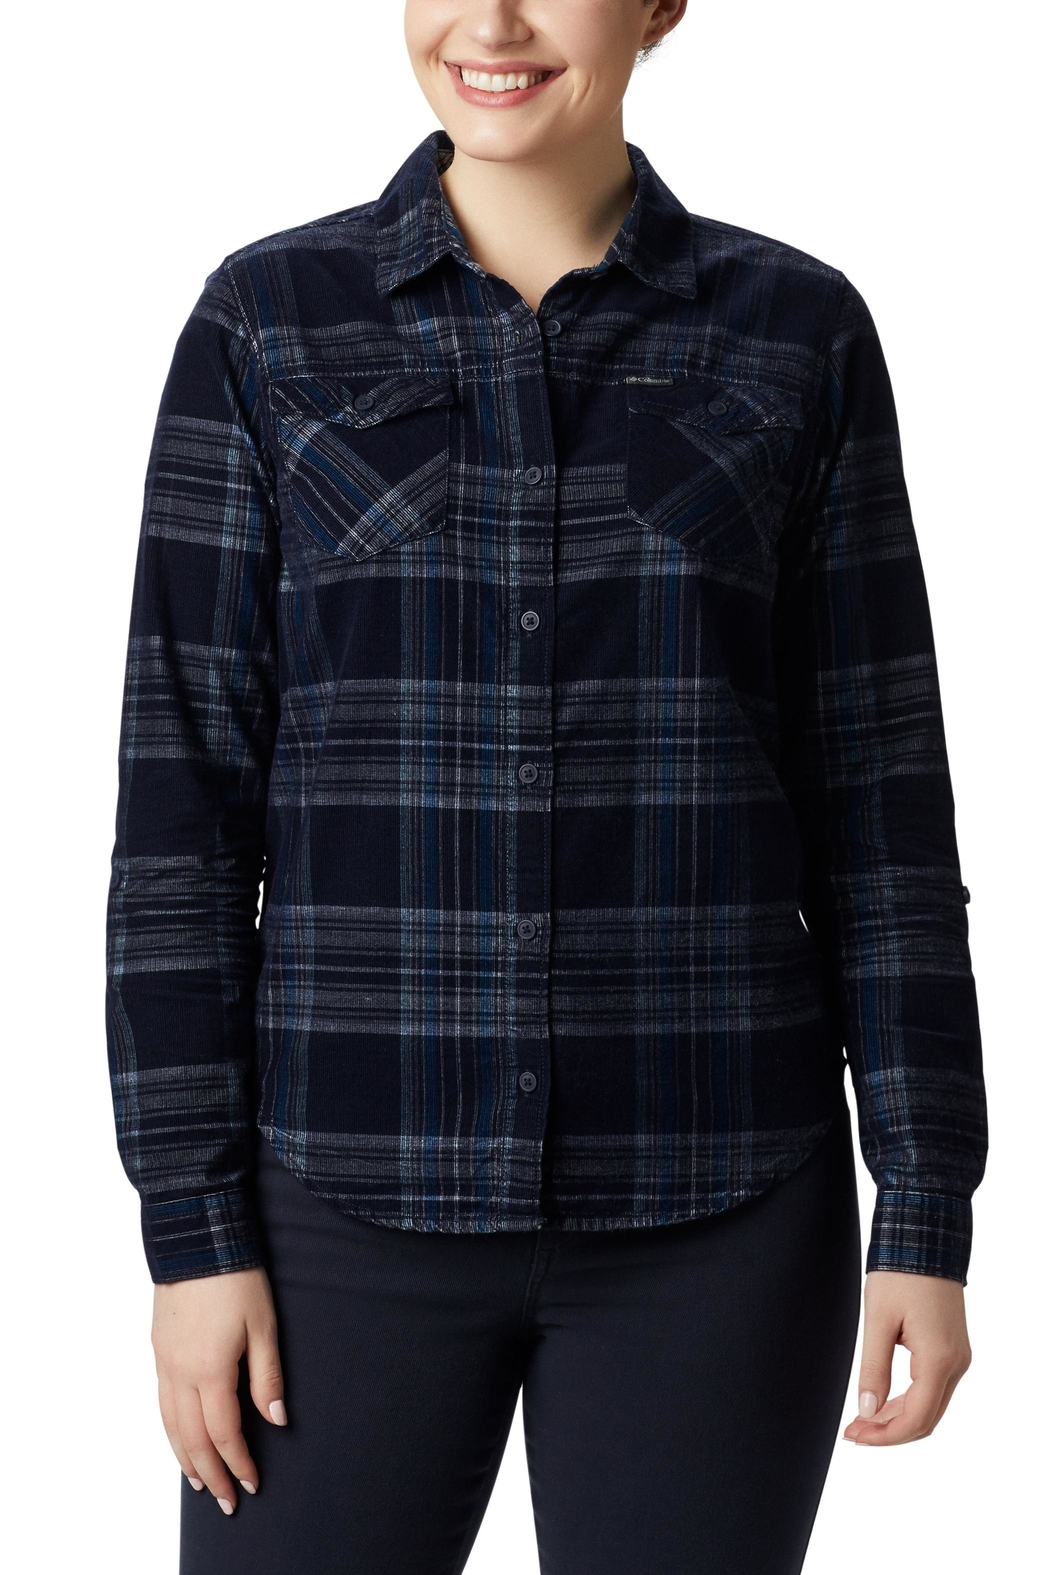 Columbia Sportswear Corduroy Plus-Size Shirt - Front Cropped Image